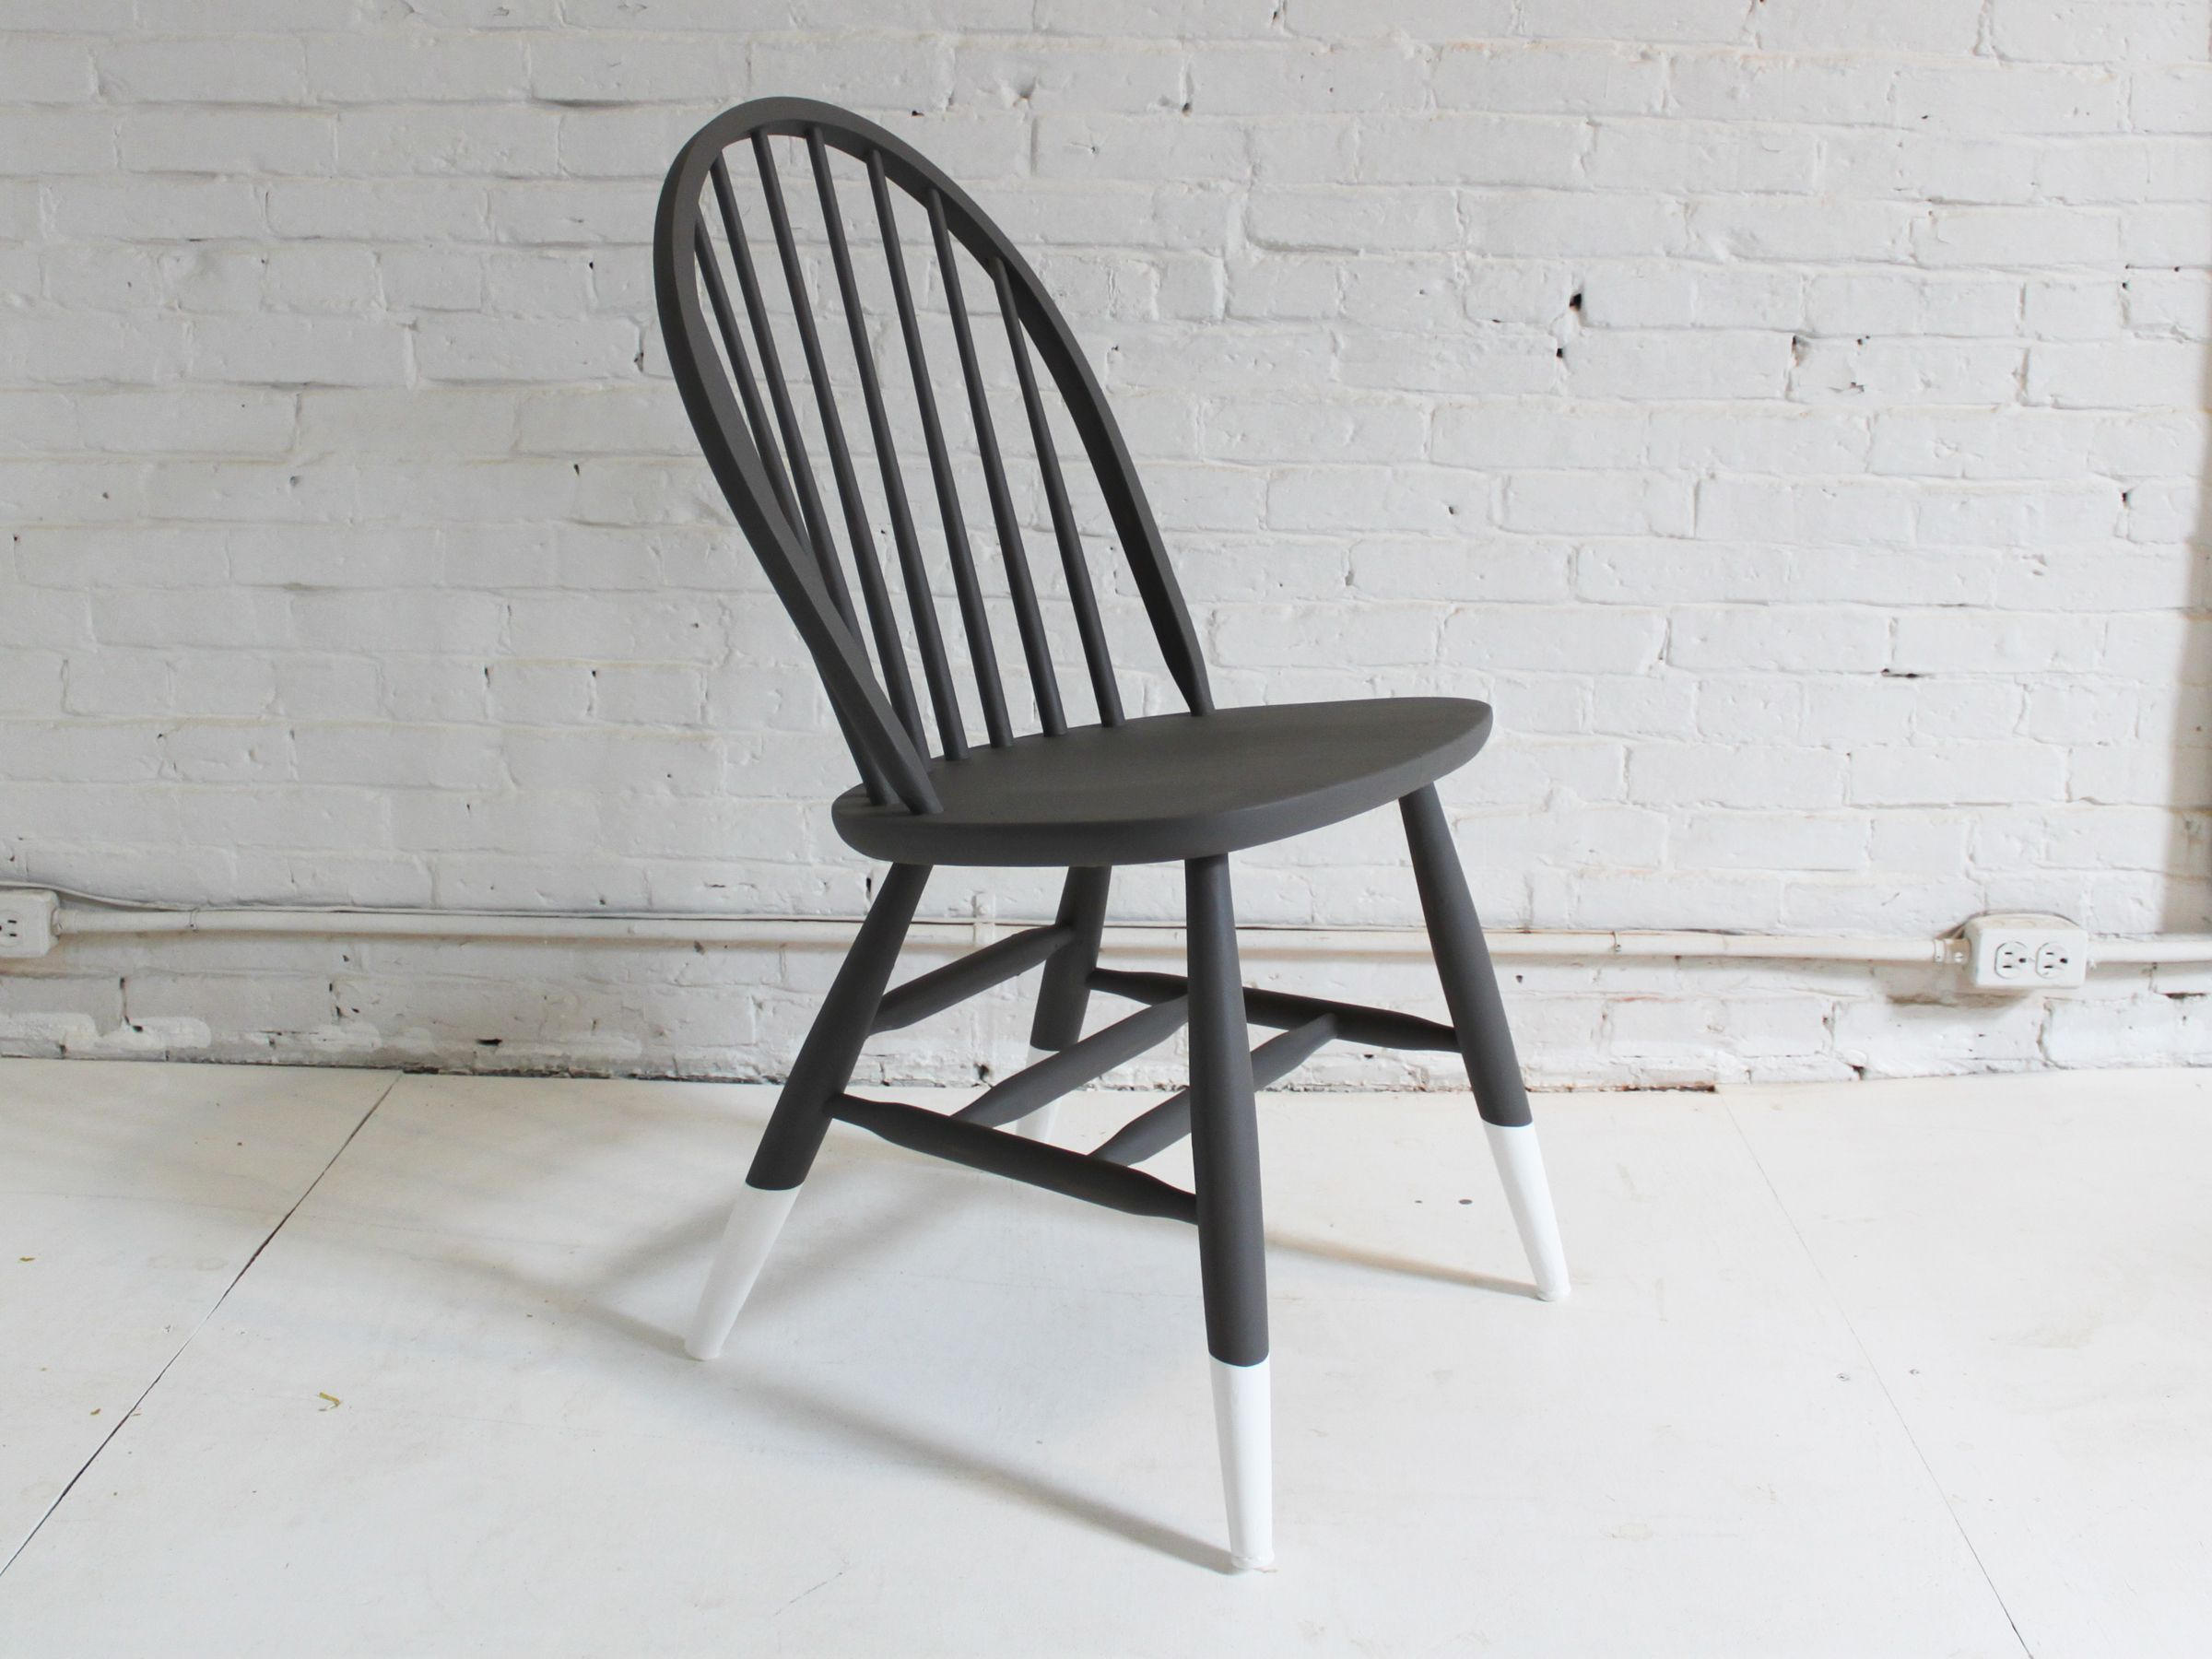 A new paint job can turn your old wooden chair a fun, brand new look!